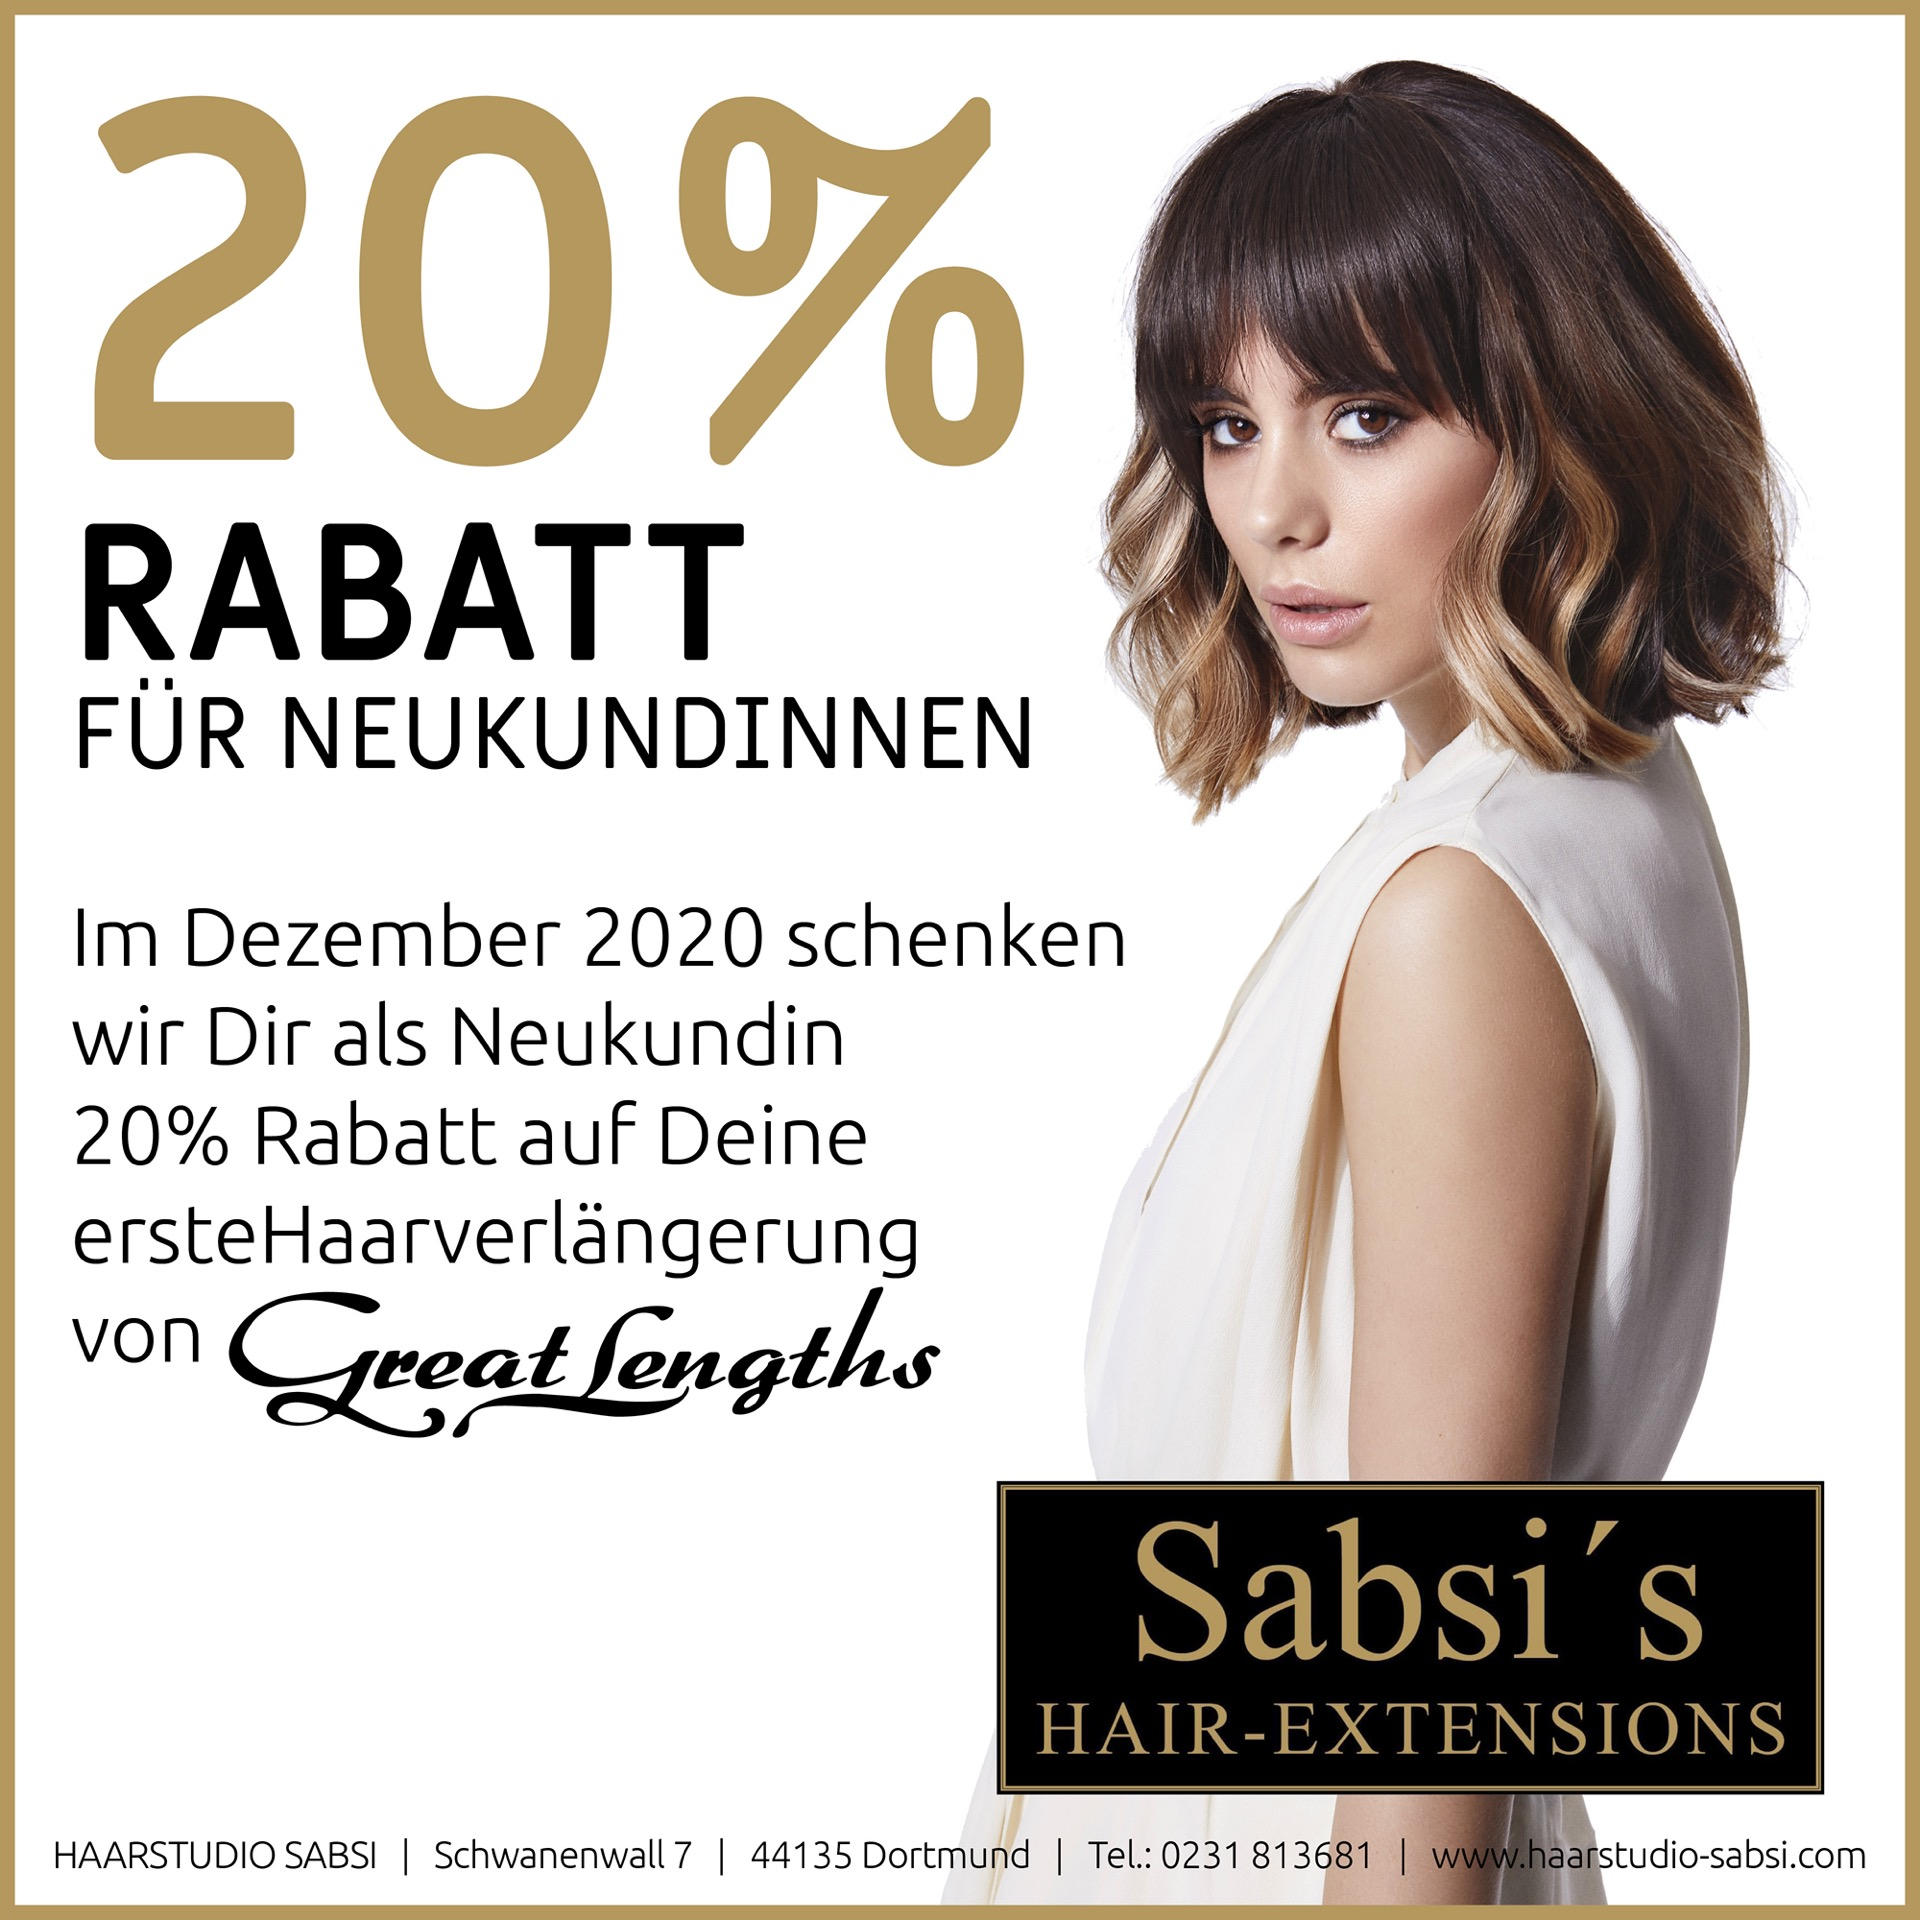 Rabatt-Aktion für Neukundinnen für Haarverlngerungen von Great Lengths